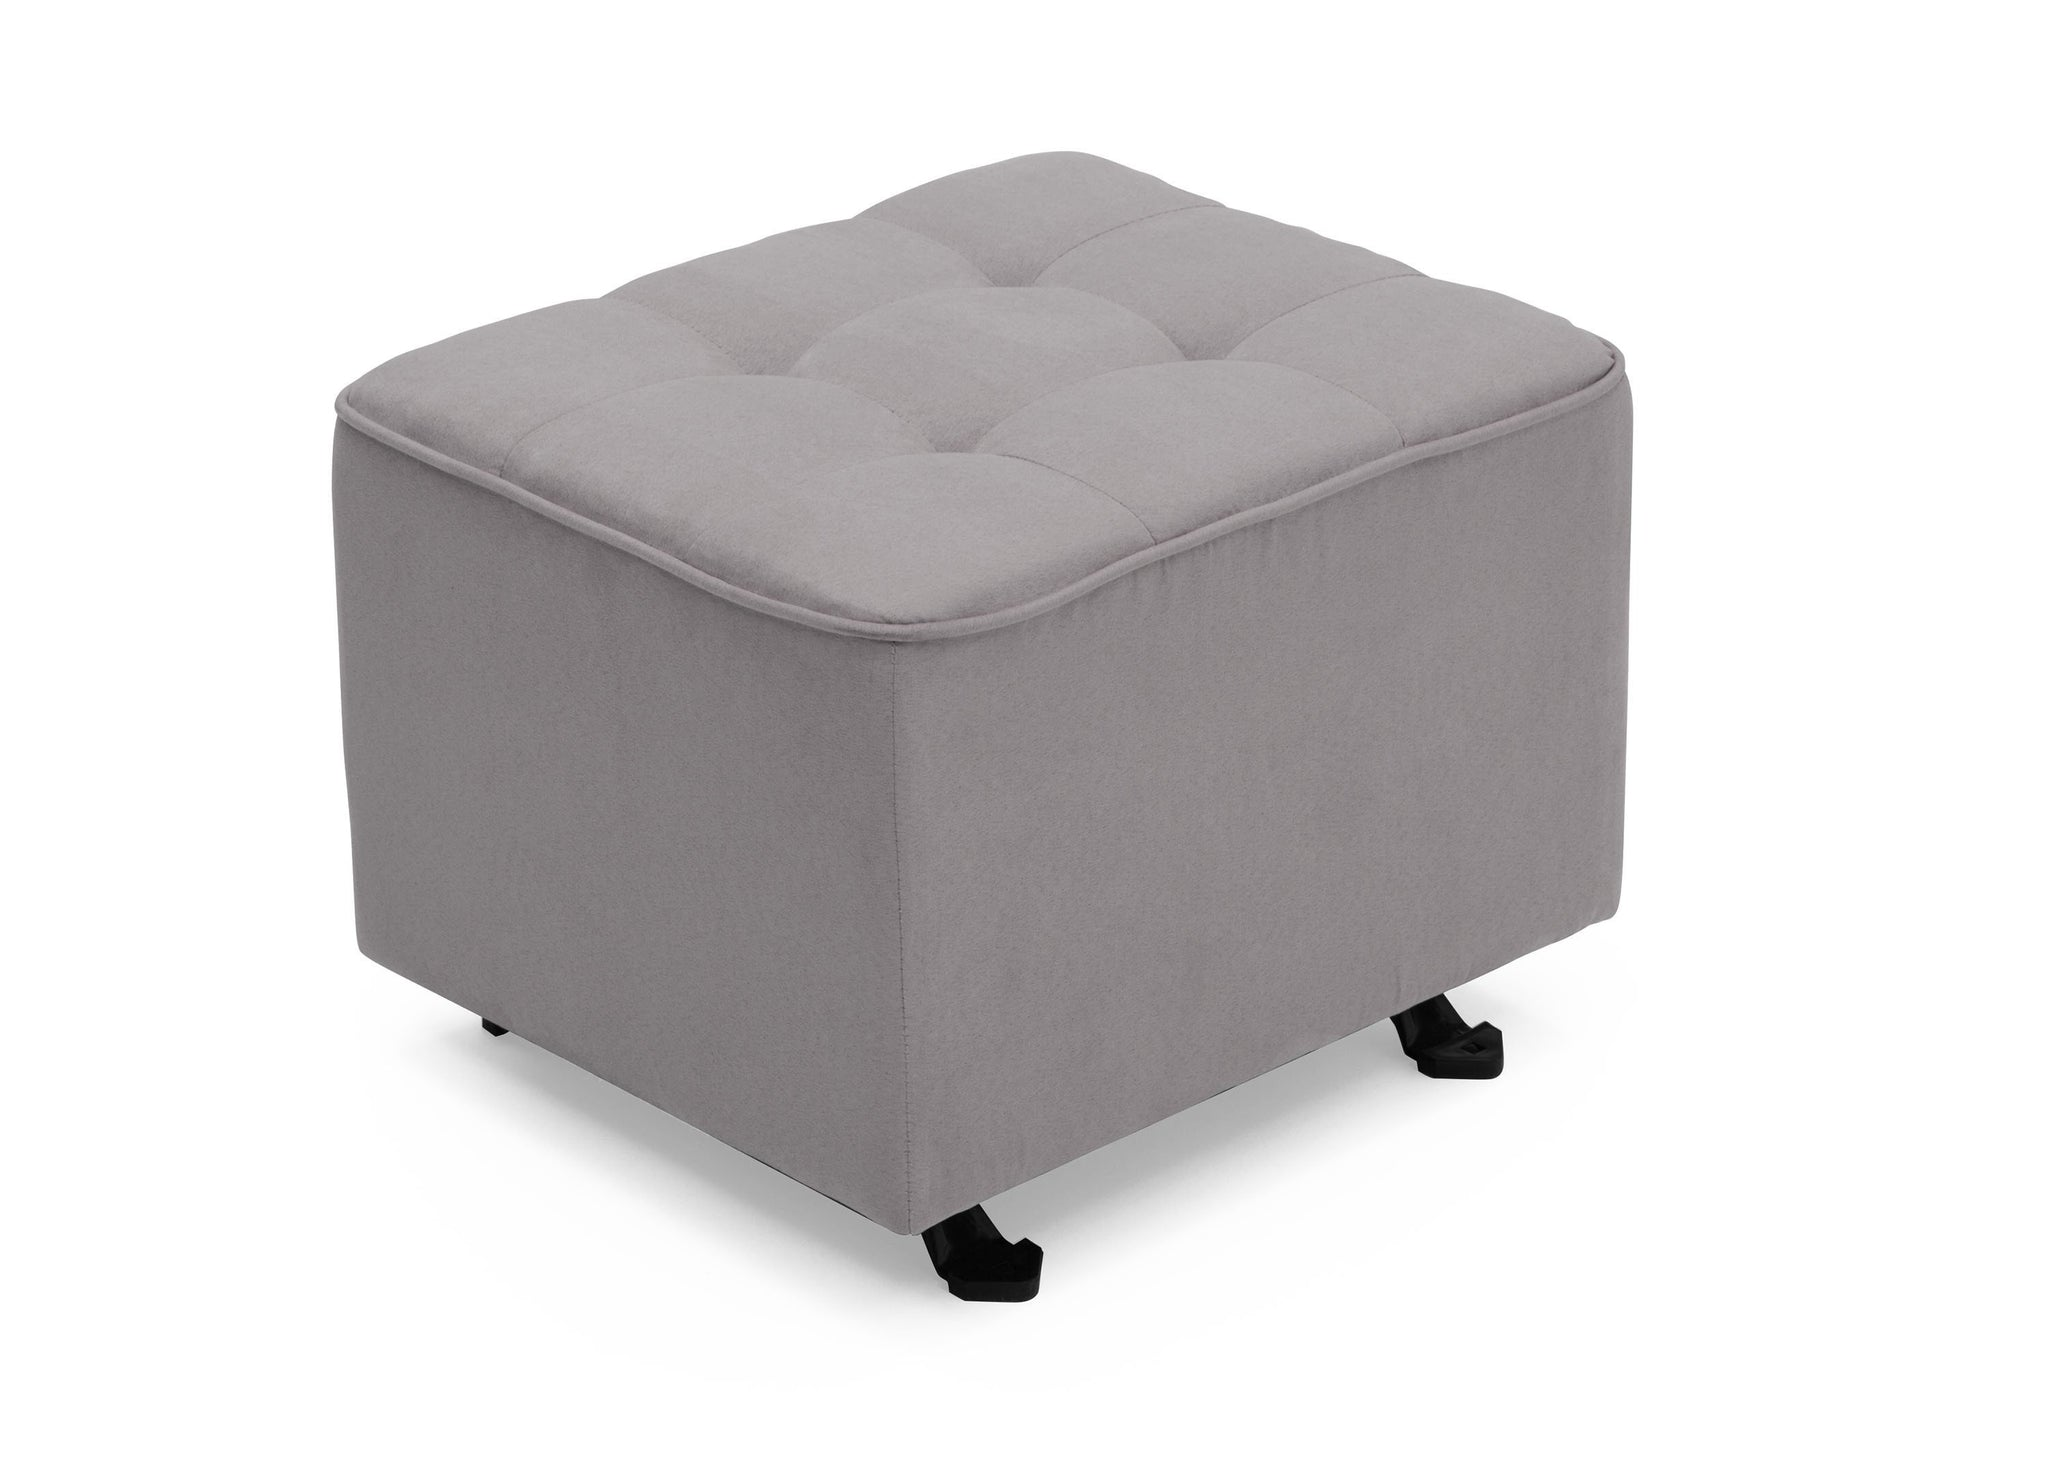 Delta Children Dove Grey (034) Tufted Nursery Gliding Ottoman, angled view, a3a